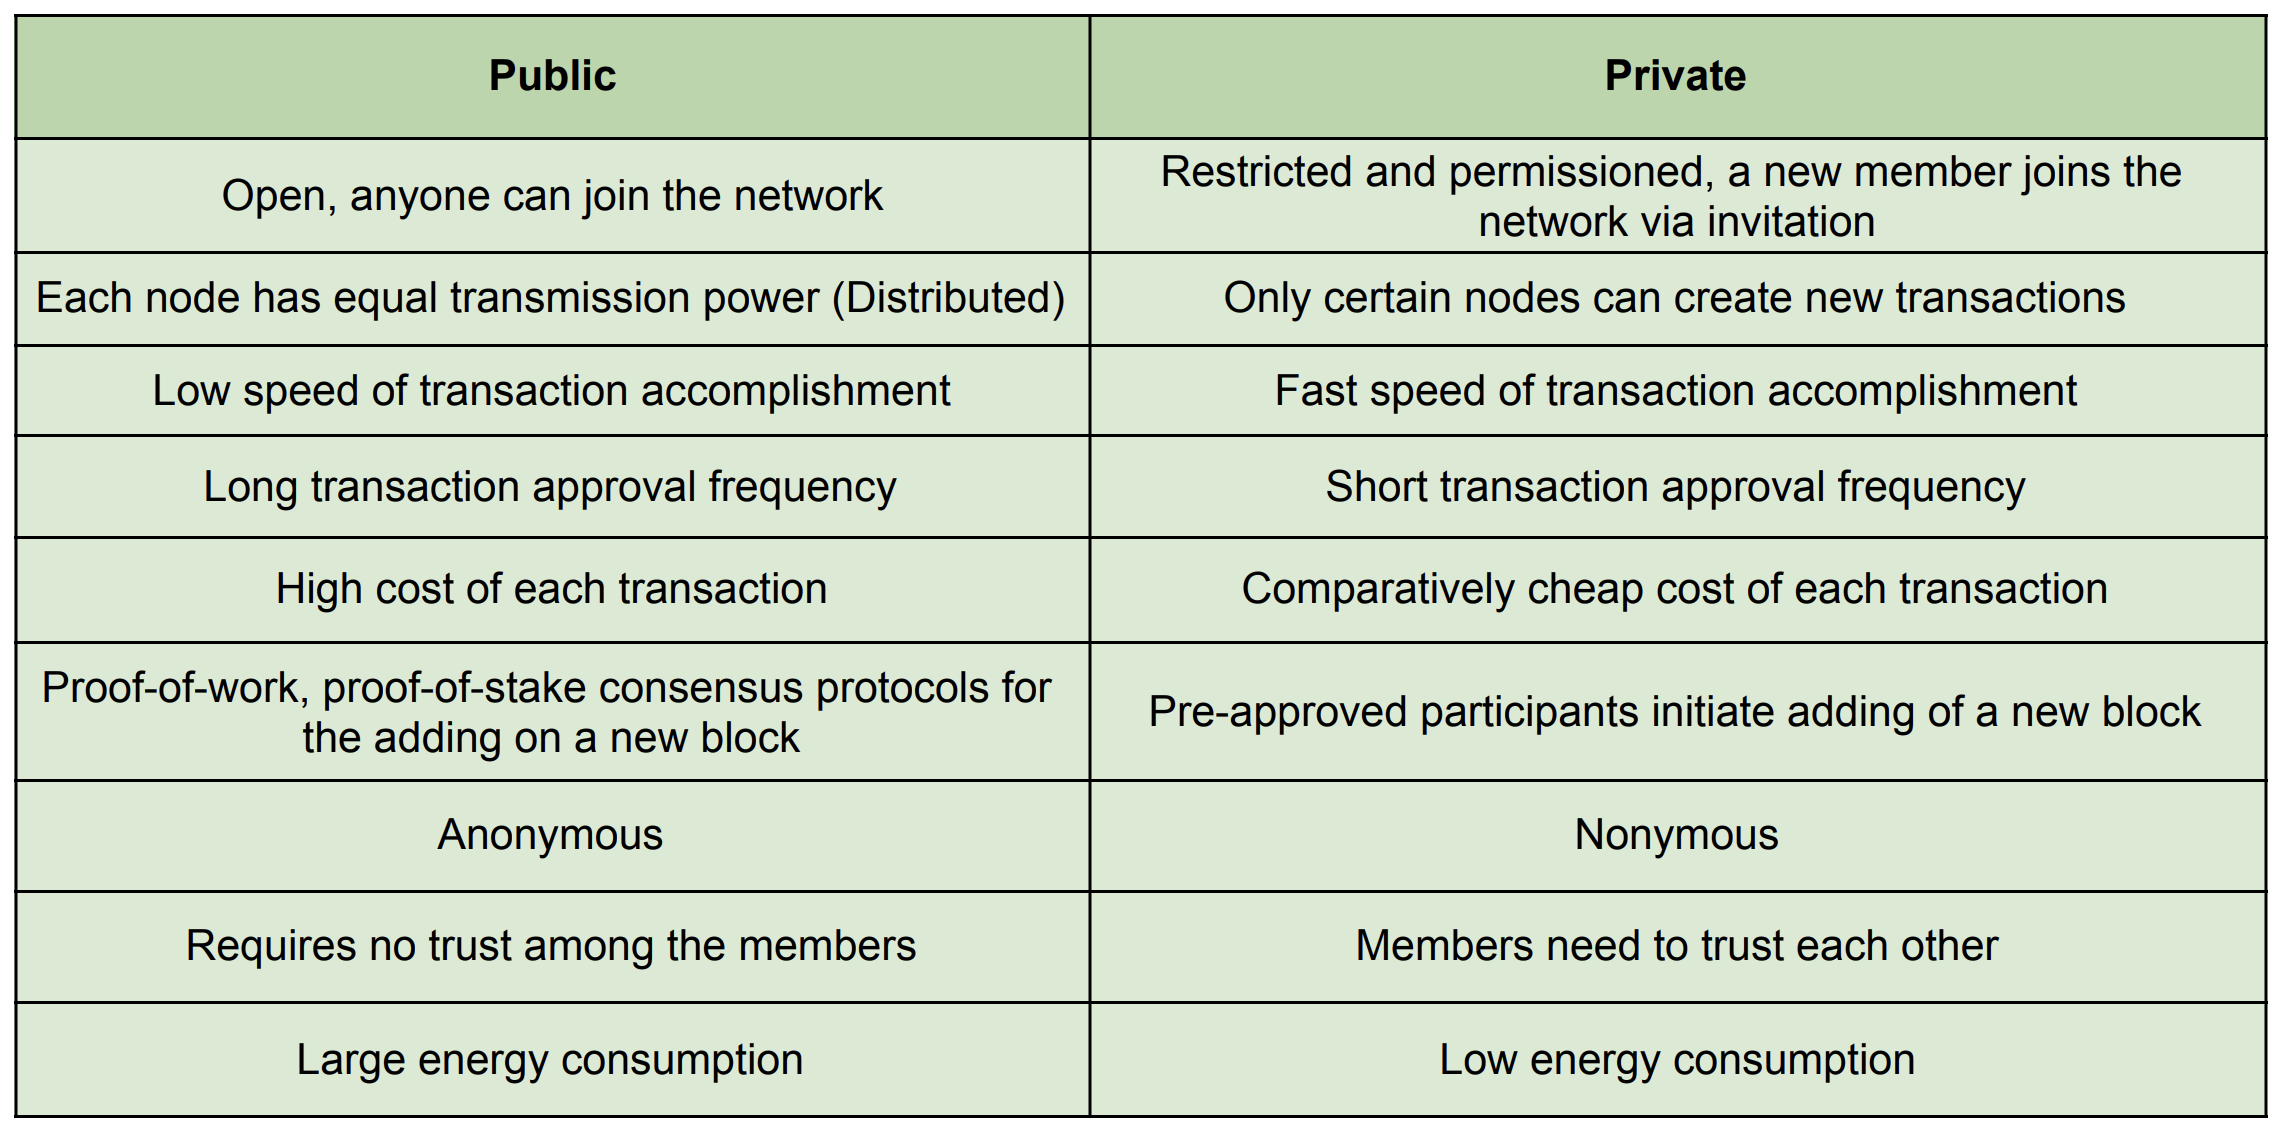 A list of differences between public and private blockchains